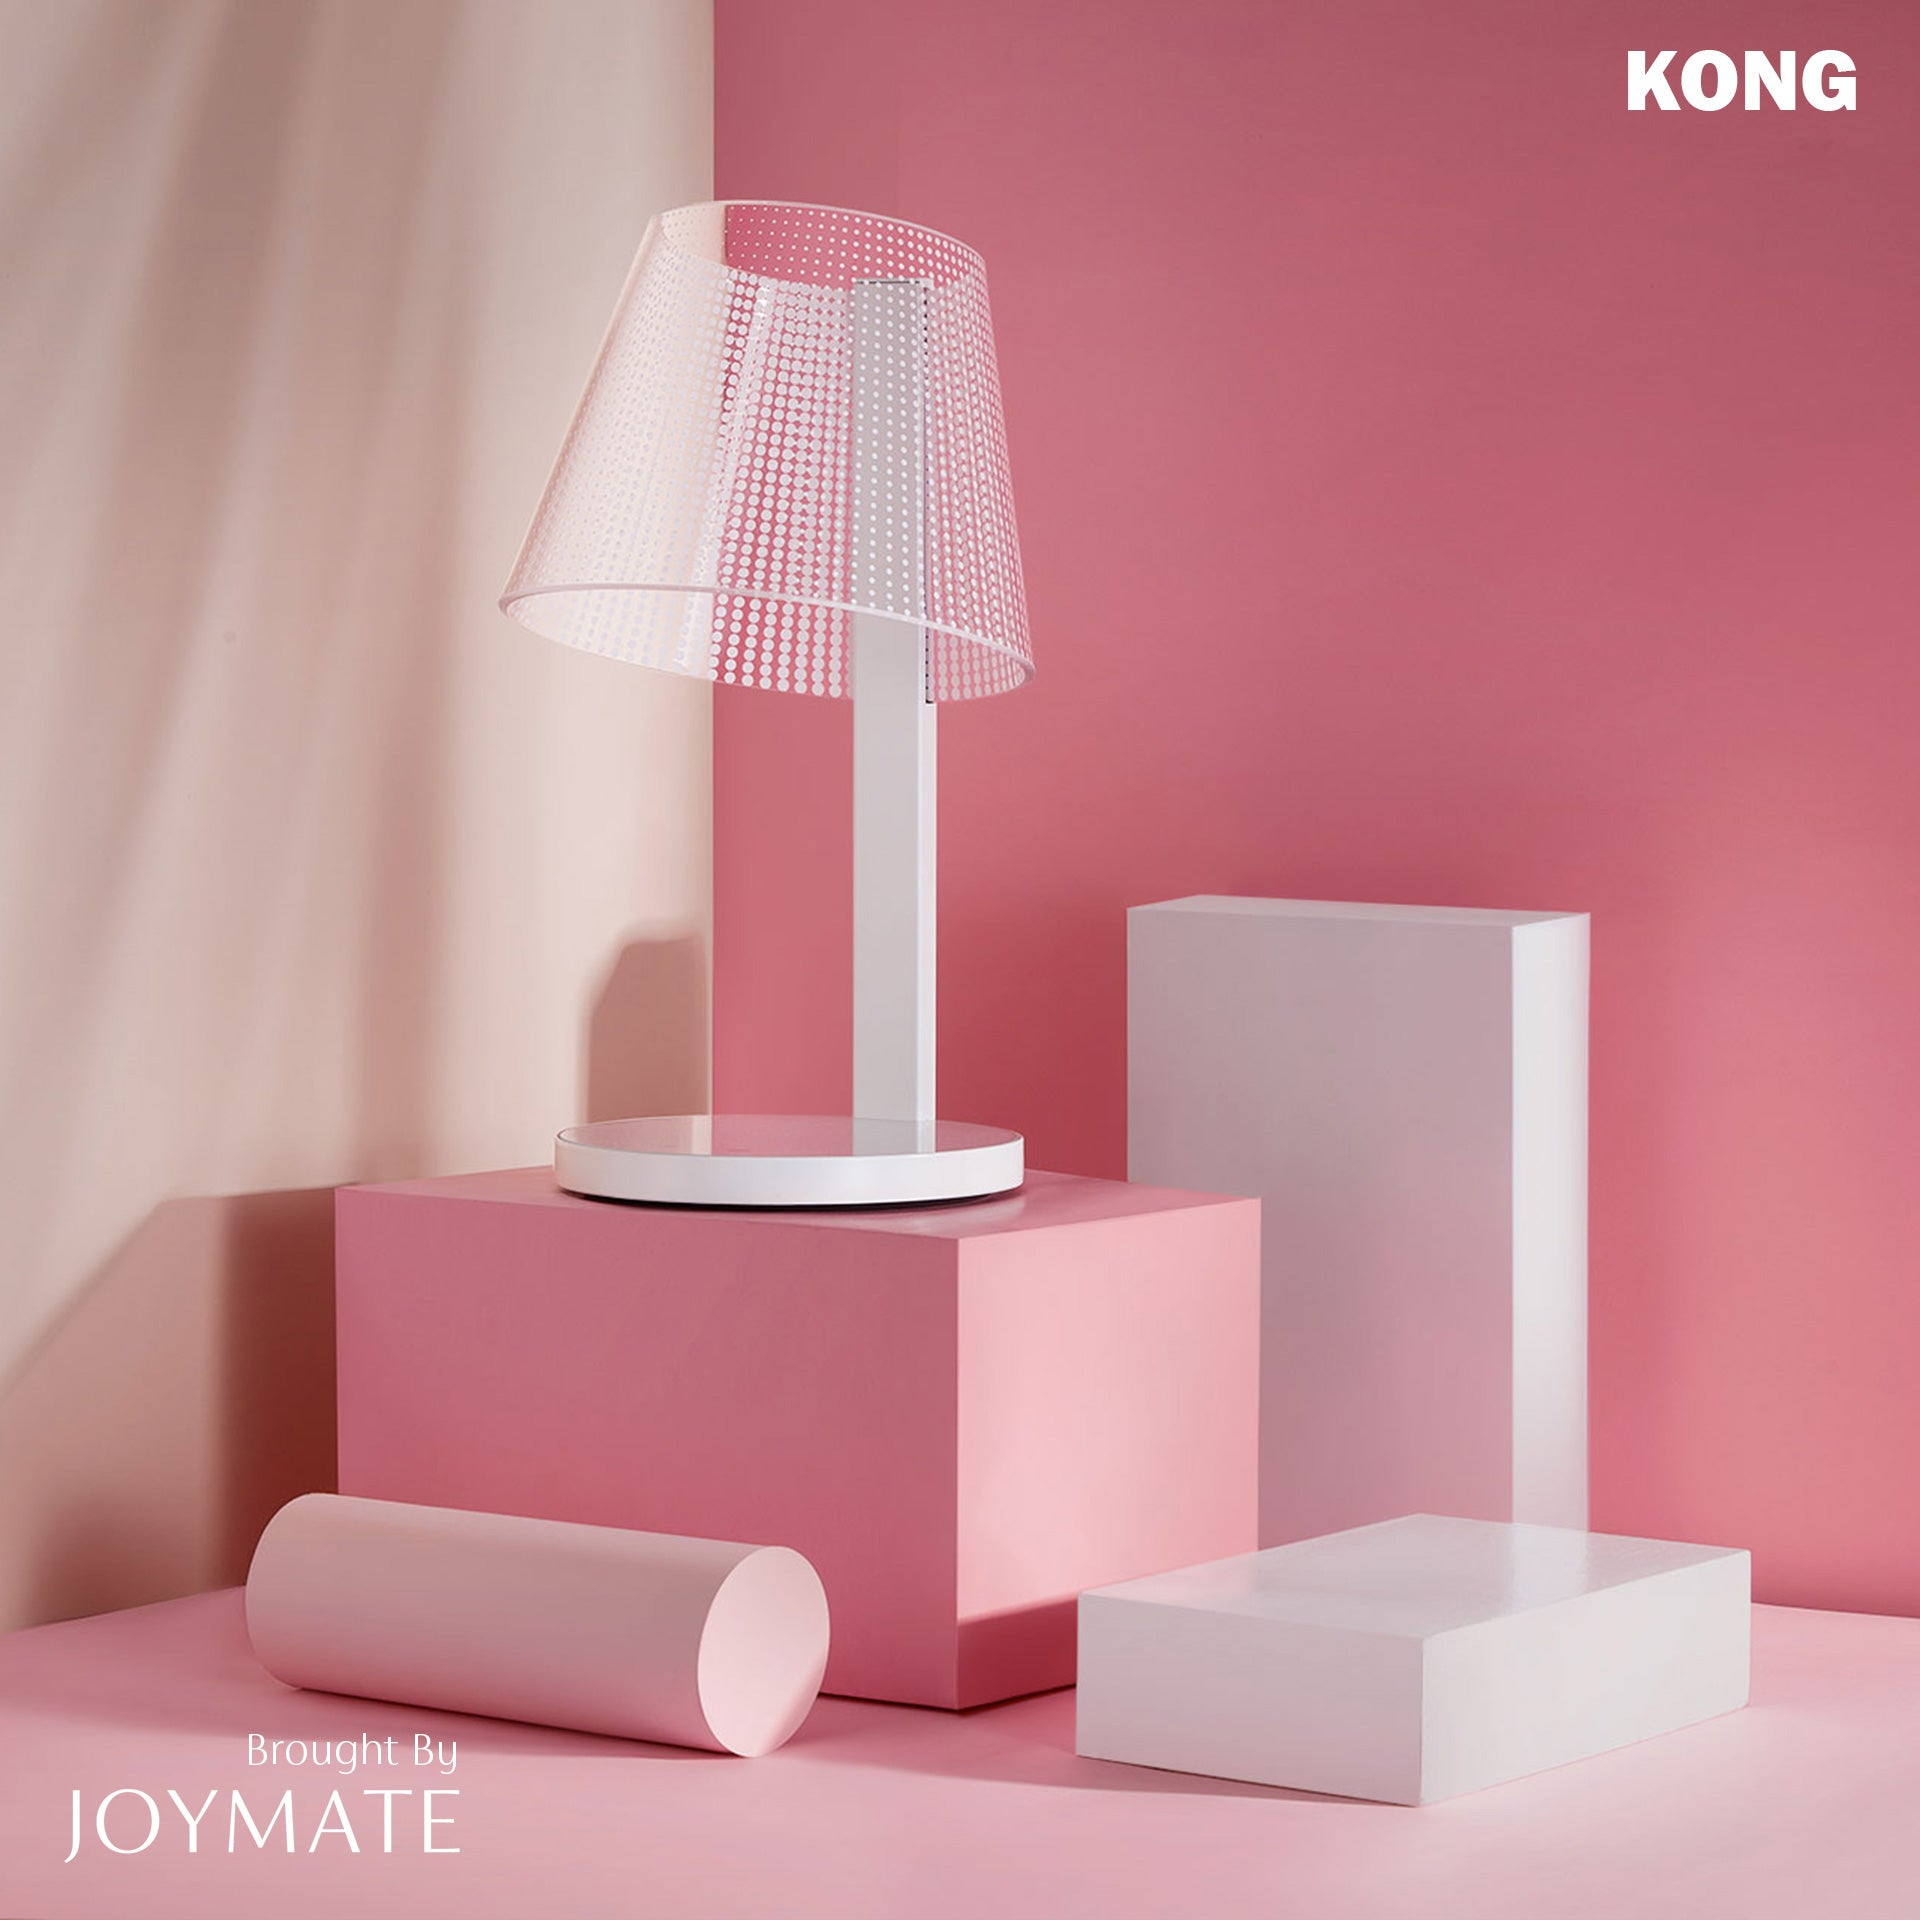 KONG - Dimmable No Bulb LED Table Lamp Wireless Charger (White)